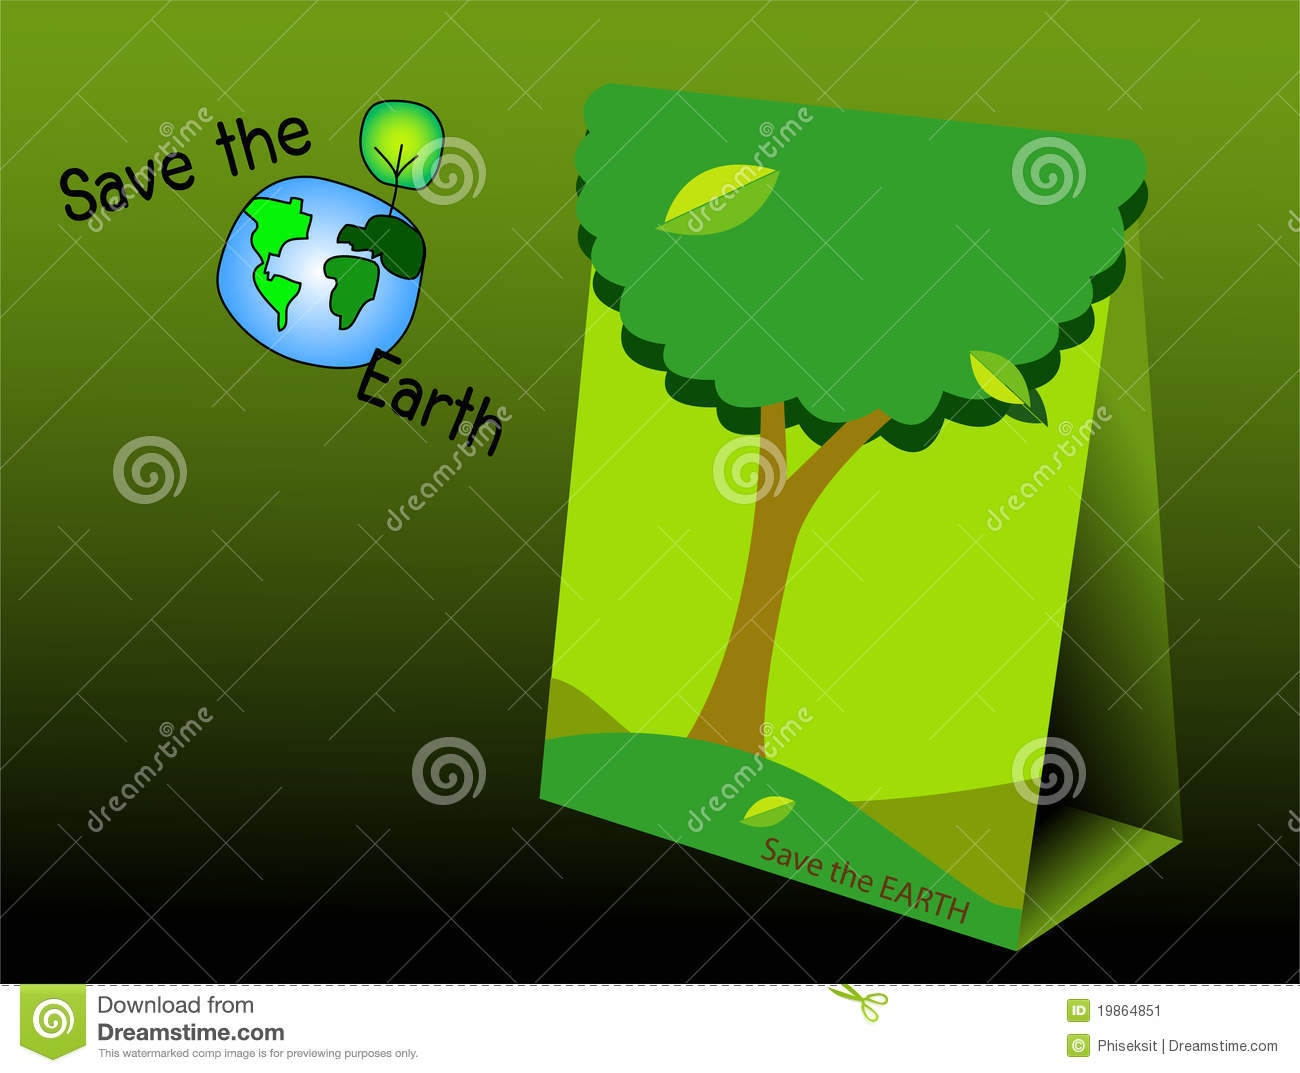 Essay on green earth